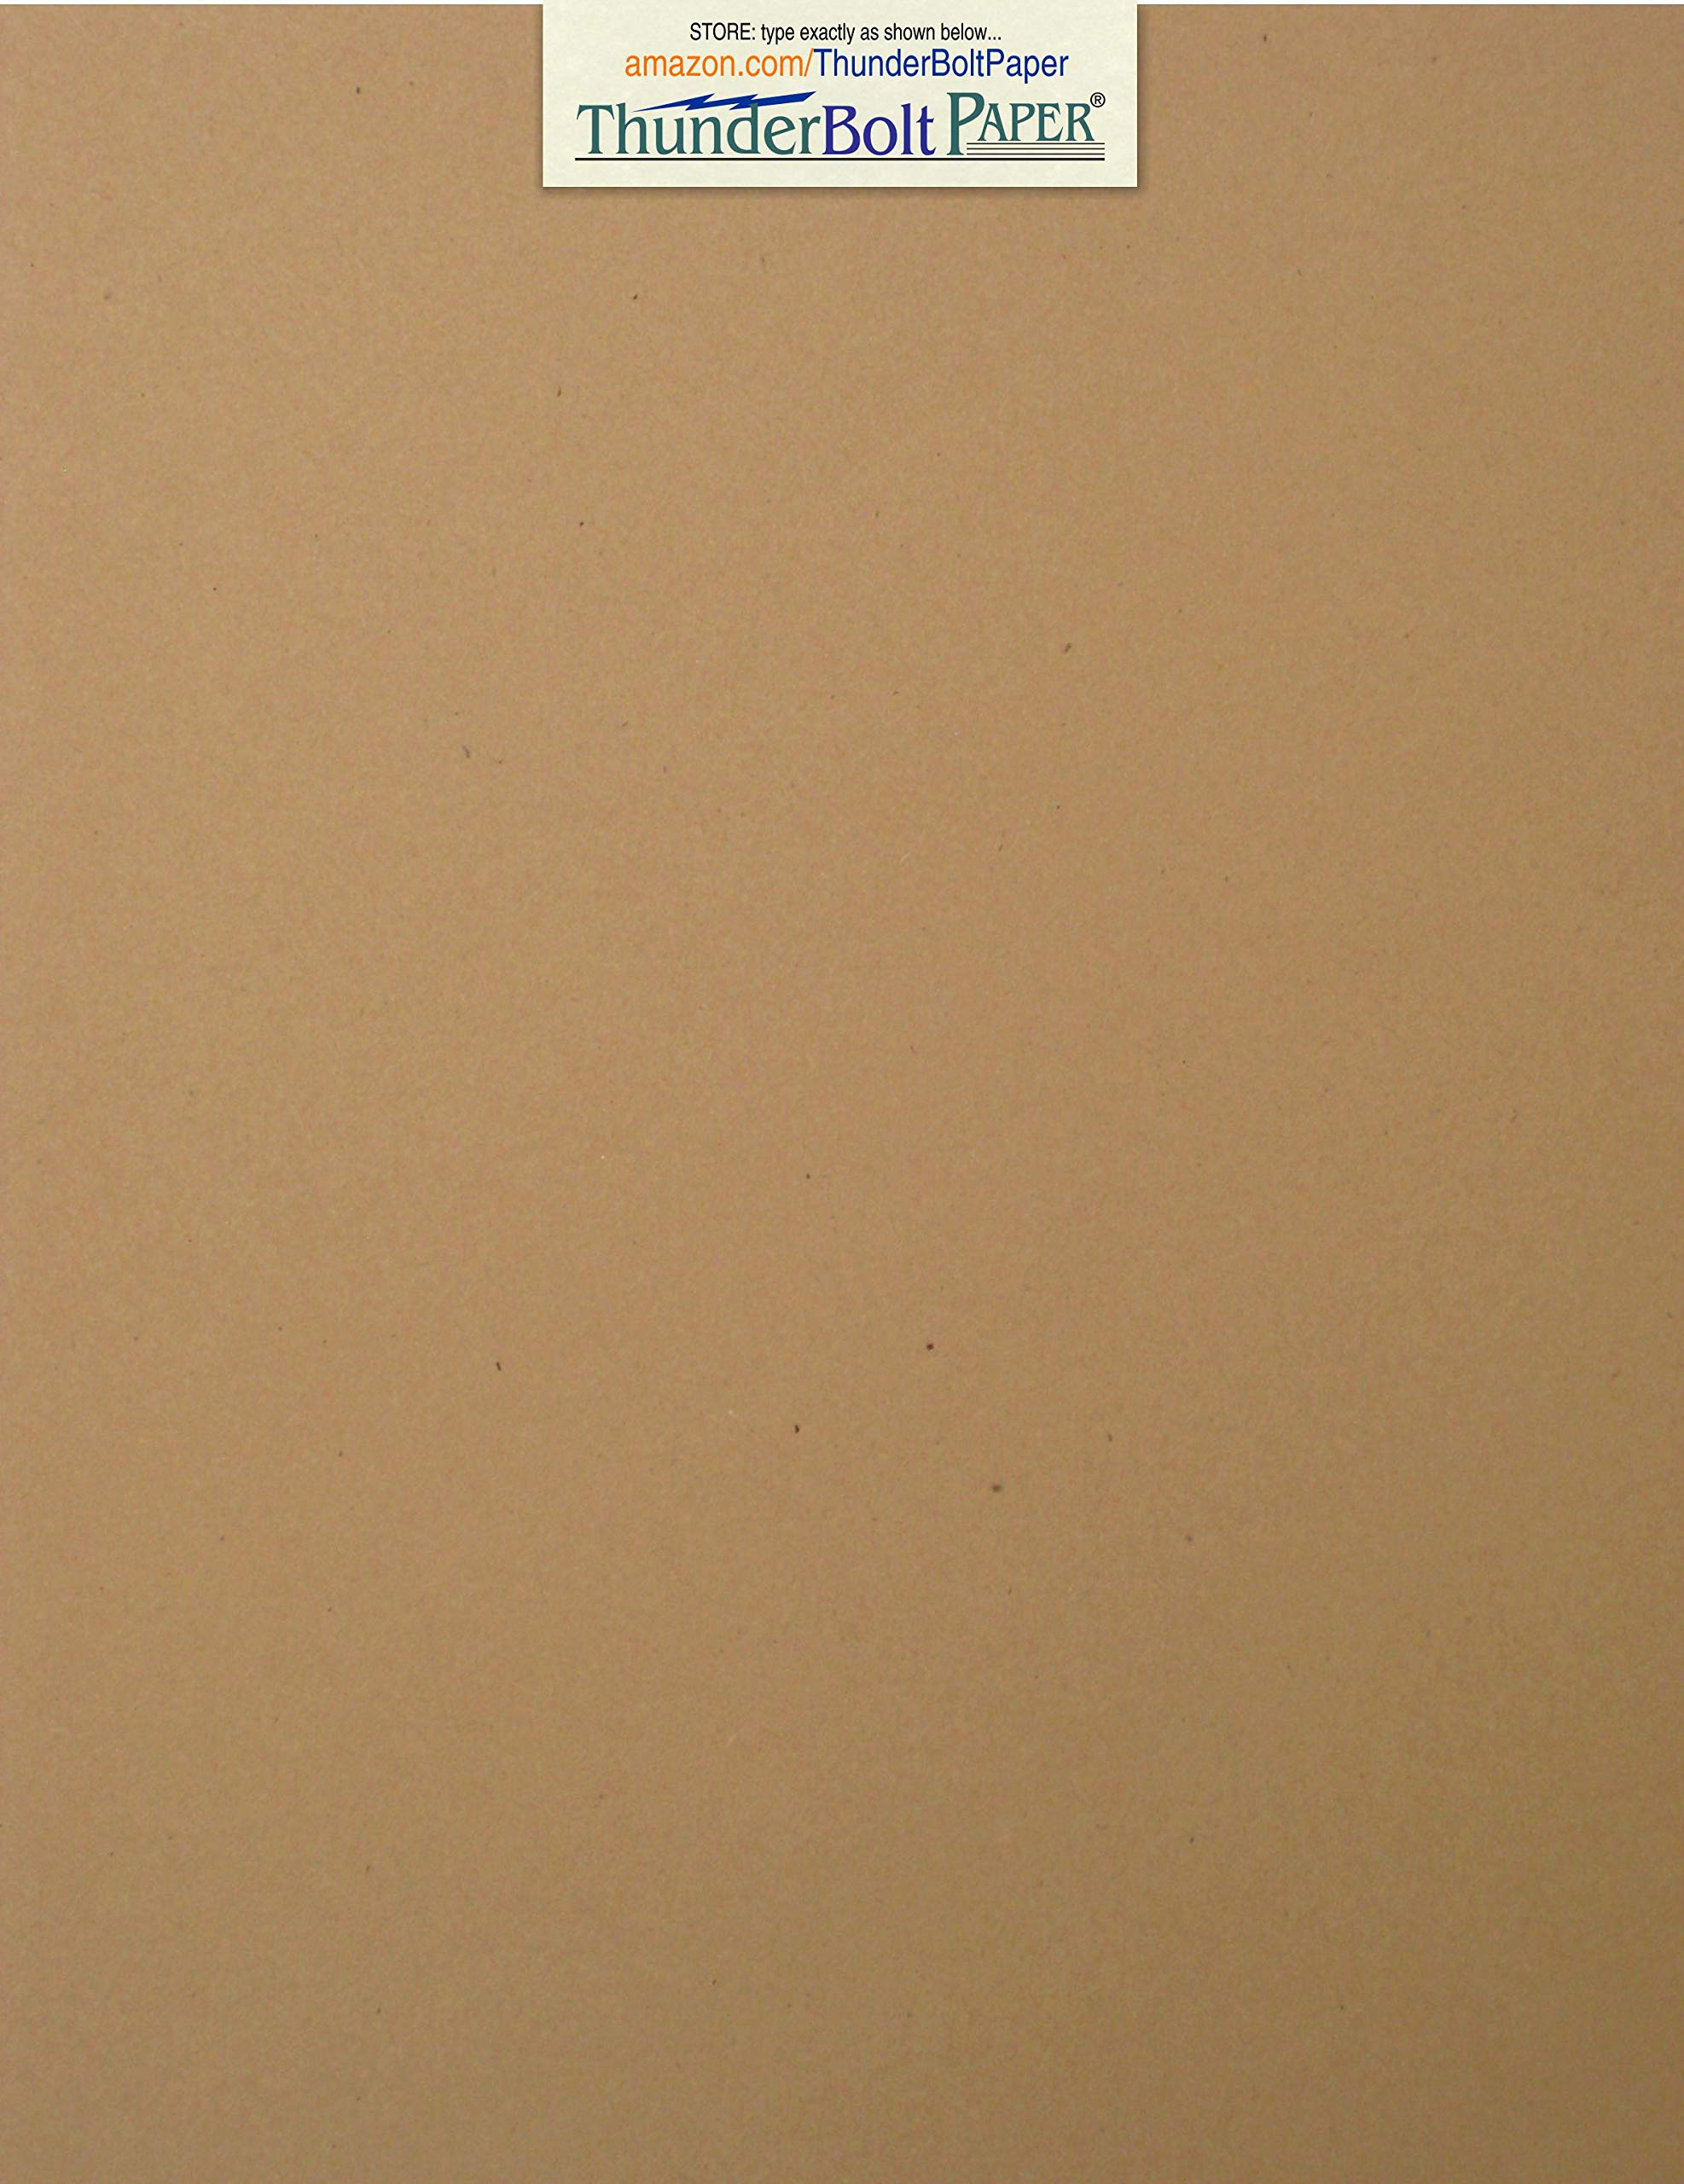 200 Brown Kraft Fiber 80# Cover Paper Sheets - 8.5'' X 11'' (8.5X11 Inches) Standard Letter|Flyer Size - Rich Earthy Color with Natural Fibers - 80lb/Pound Cardstock - Smooth Finish by ThunderBolt Paper